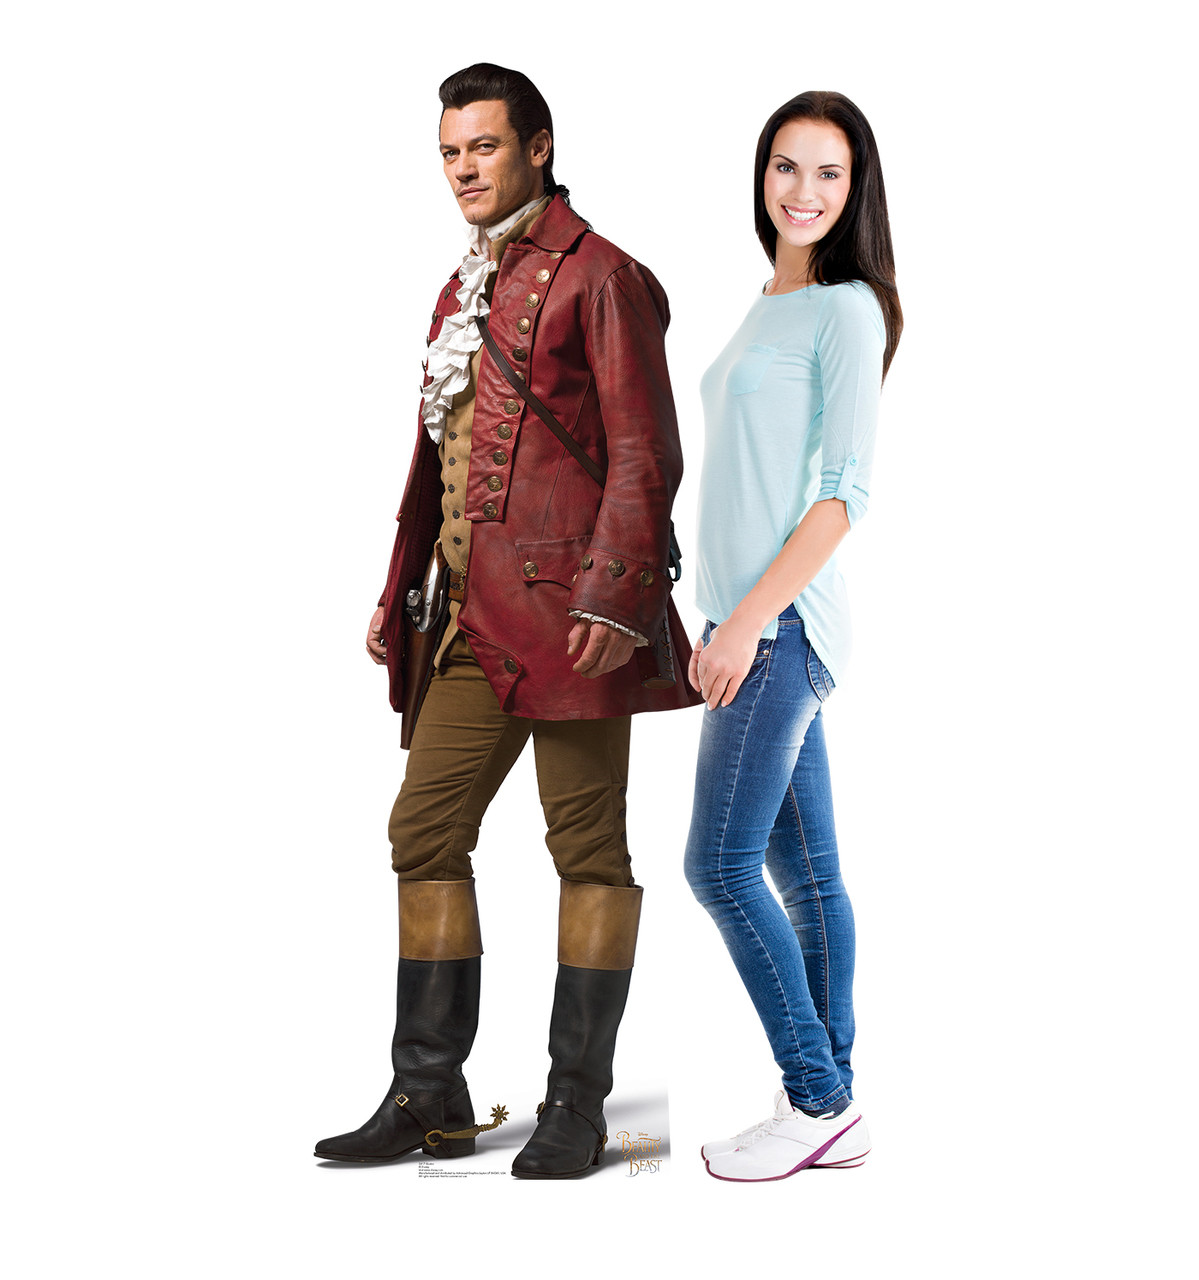 Life-size Gaston (Disney's Beauty and the Beast) Cardboard Standup | Cardboard Cutout 2